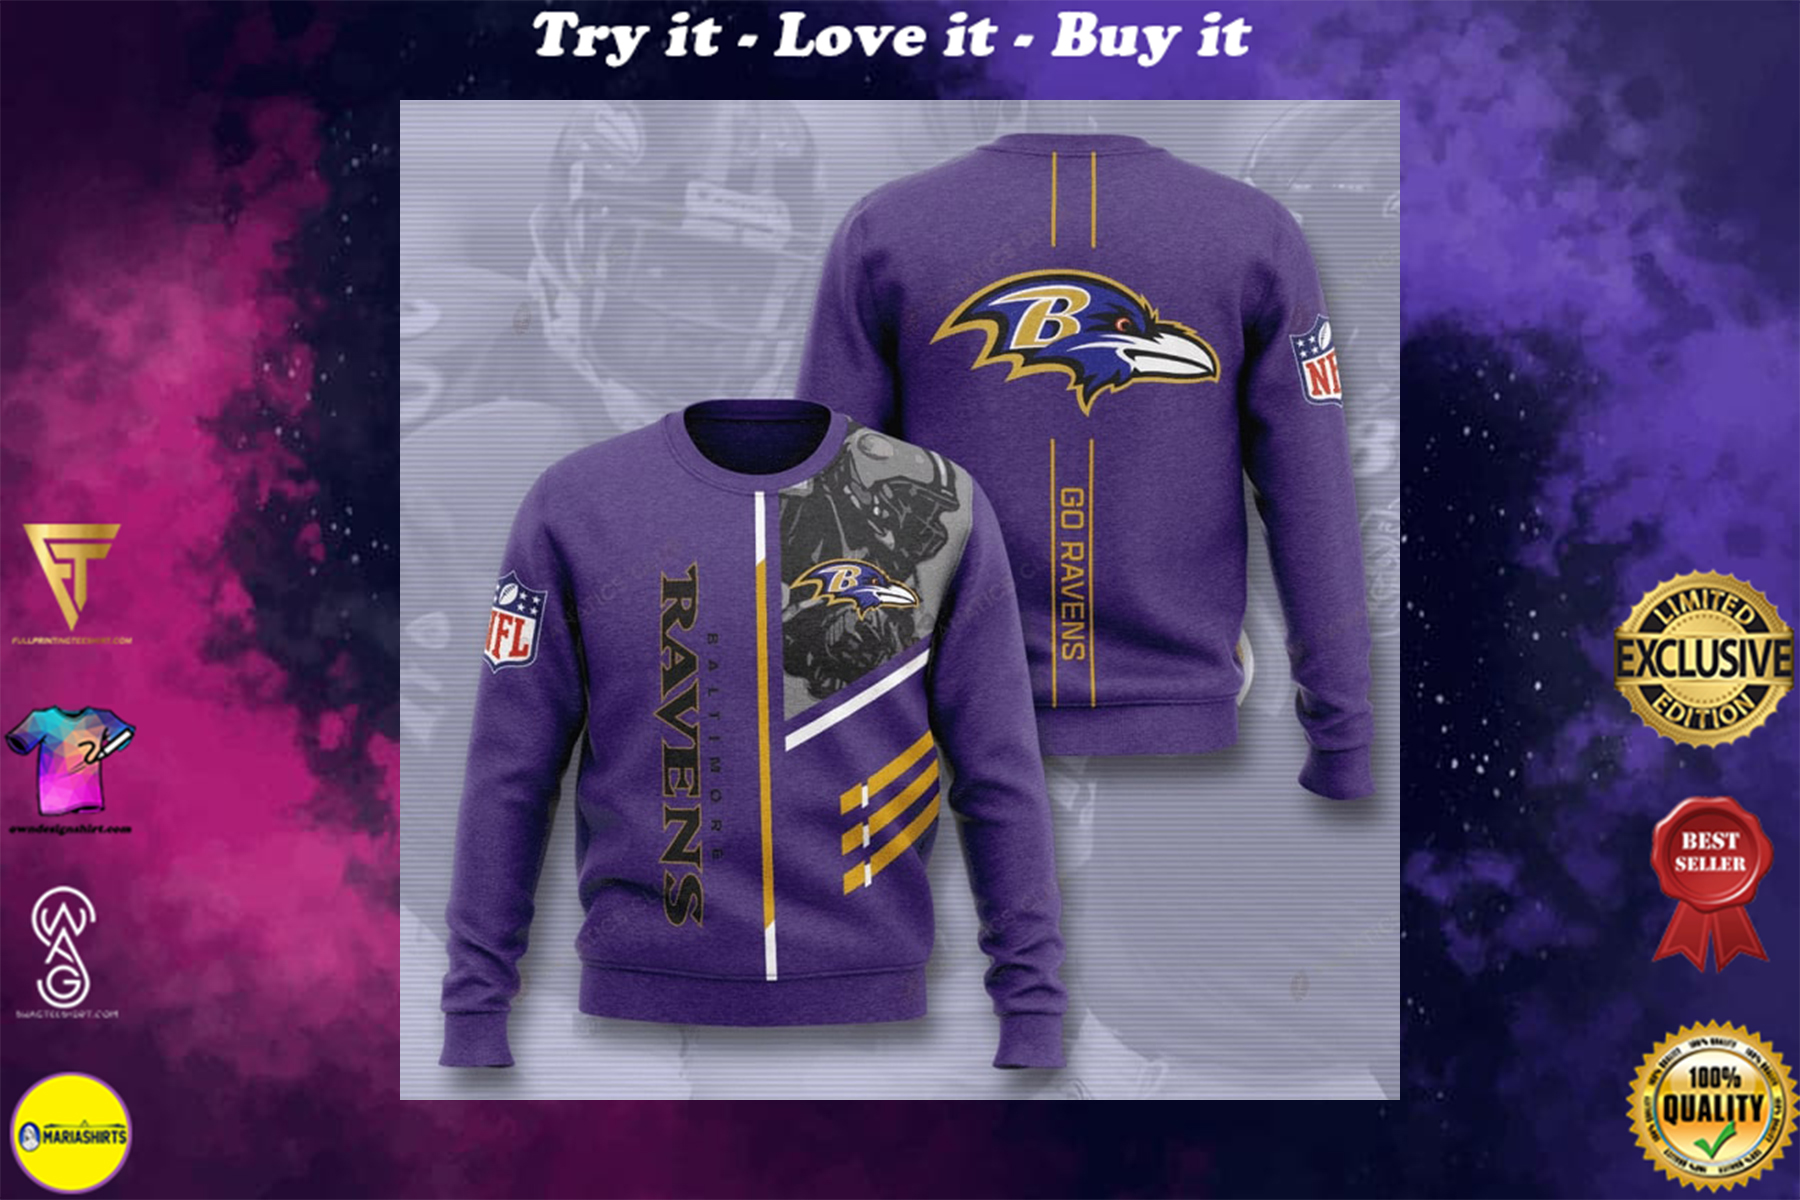 [special edition] baltimore ravens go ravens full printing ugly sweater - maria